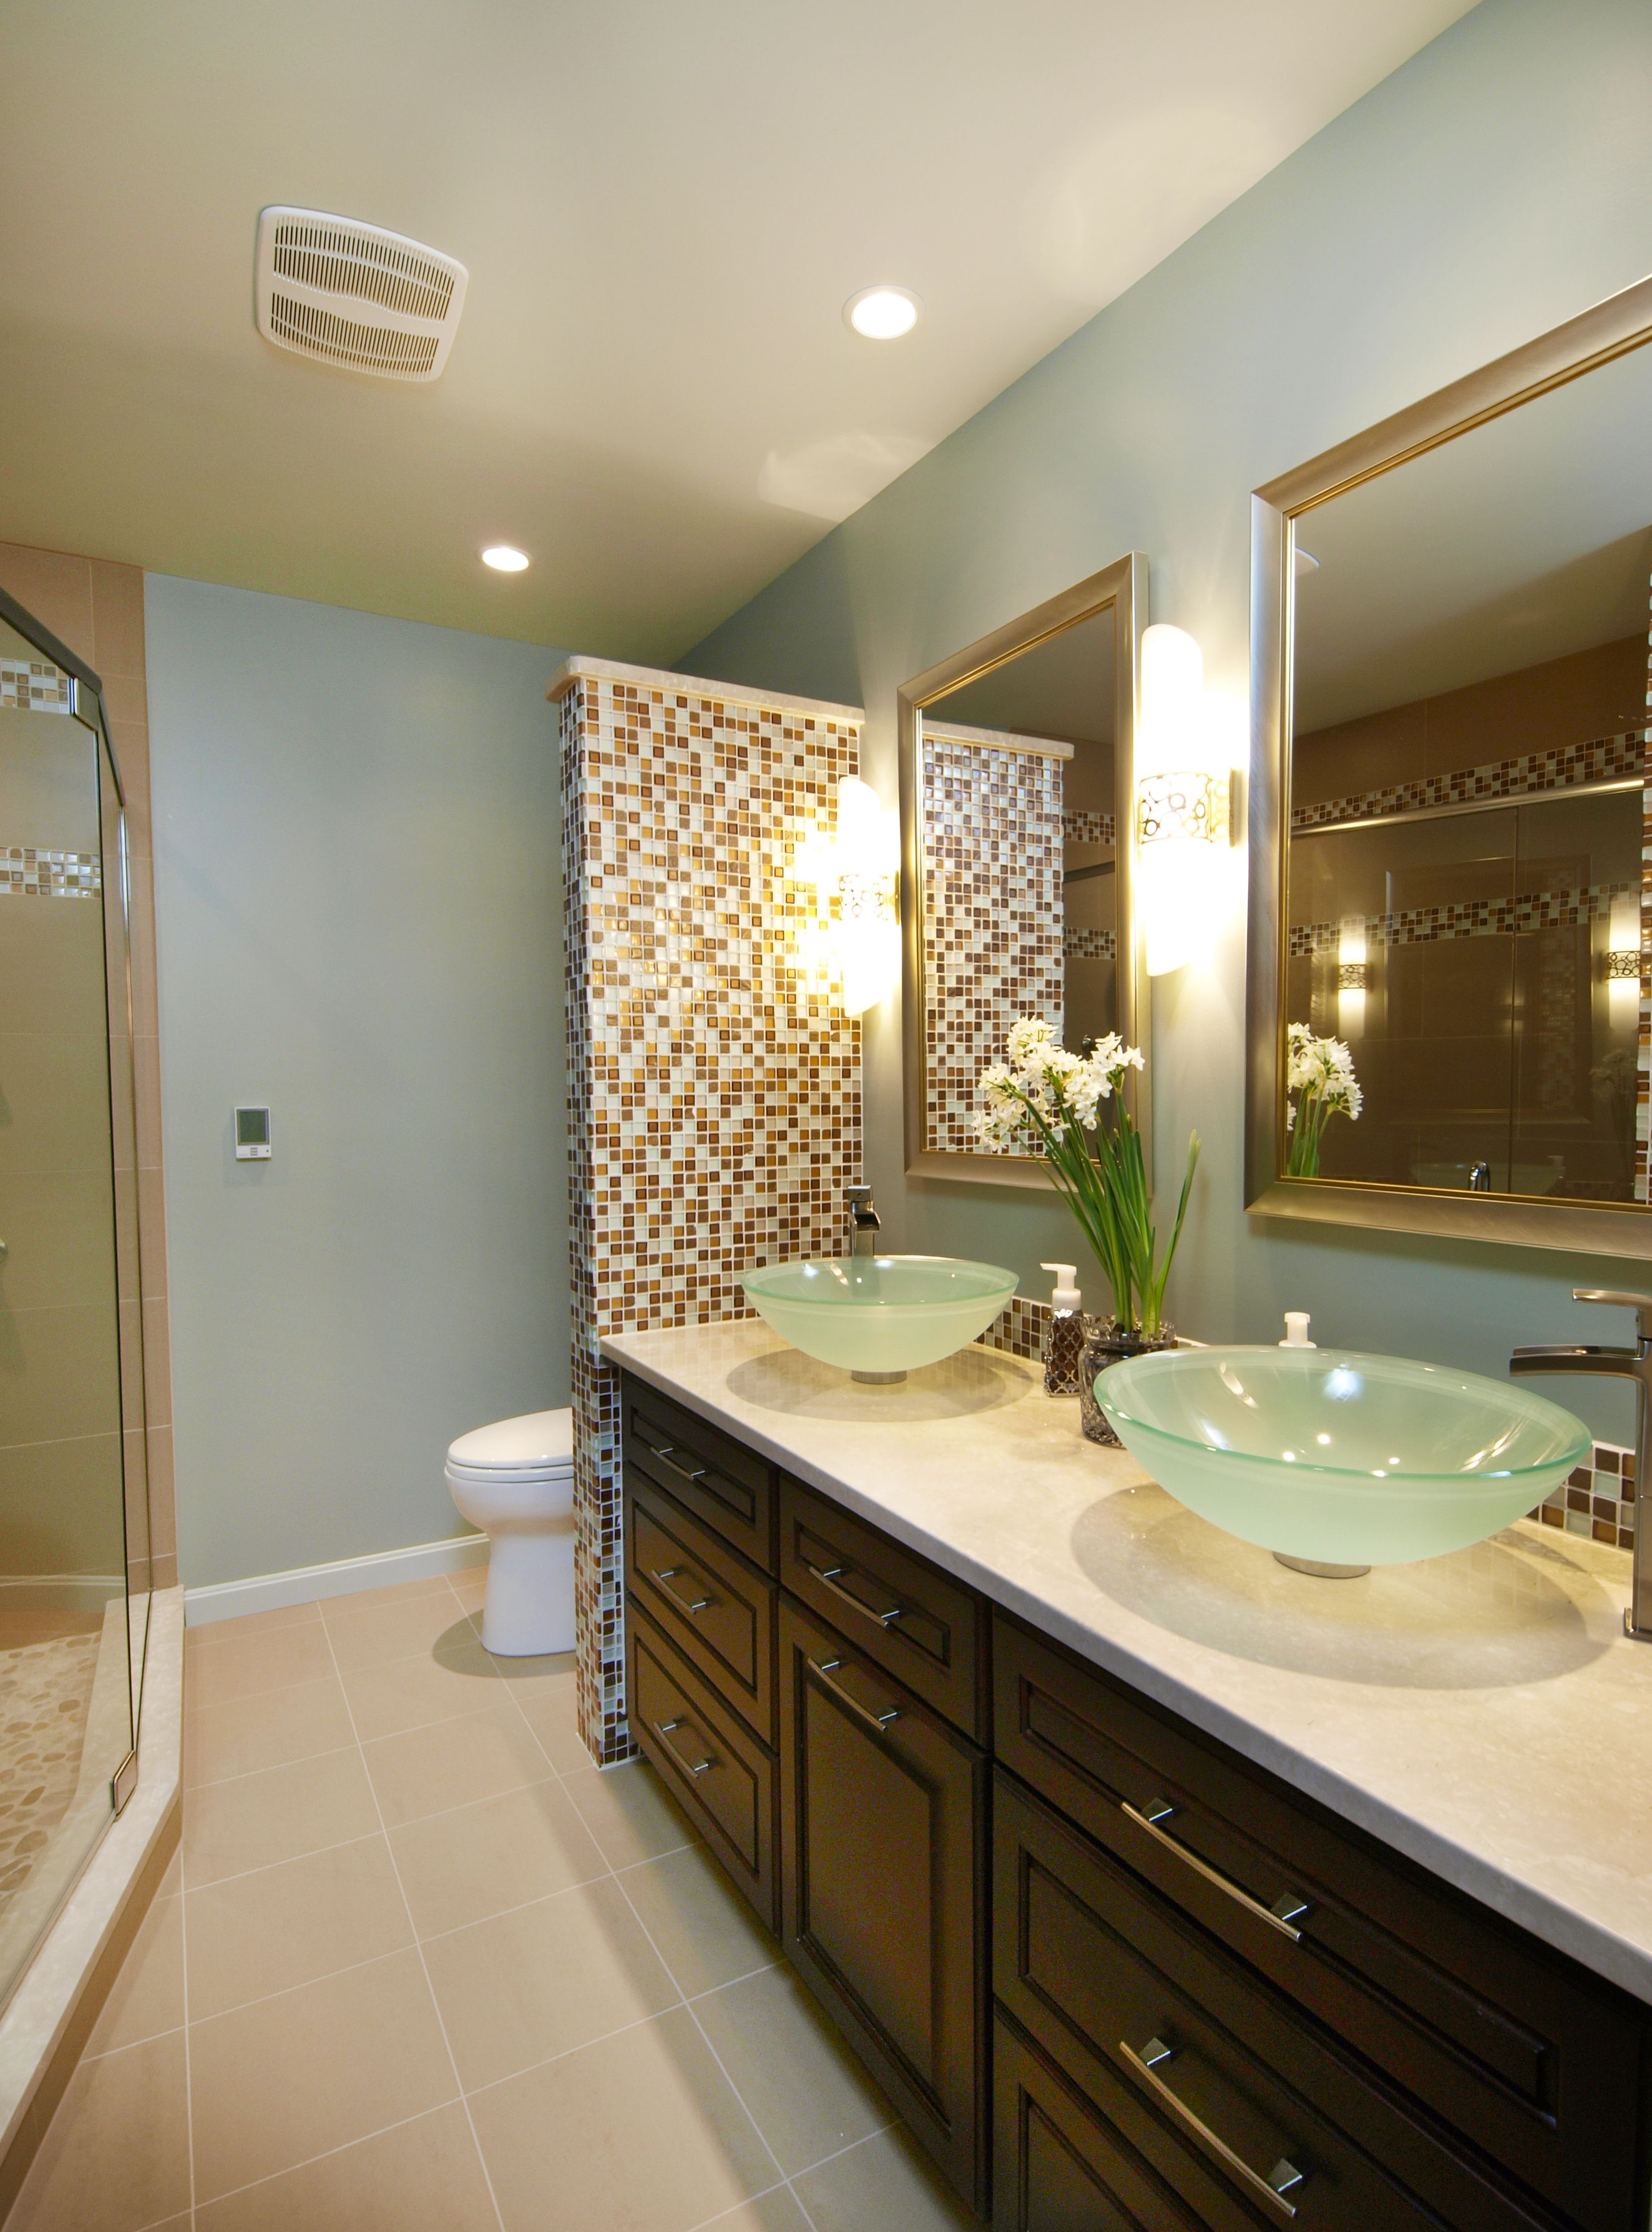 Towson Md Master Bath By Bel Air Construction Kitchen And Bath Remodeling Eclectic Bathroom Bathroom Design [ jpg ]